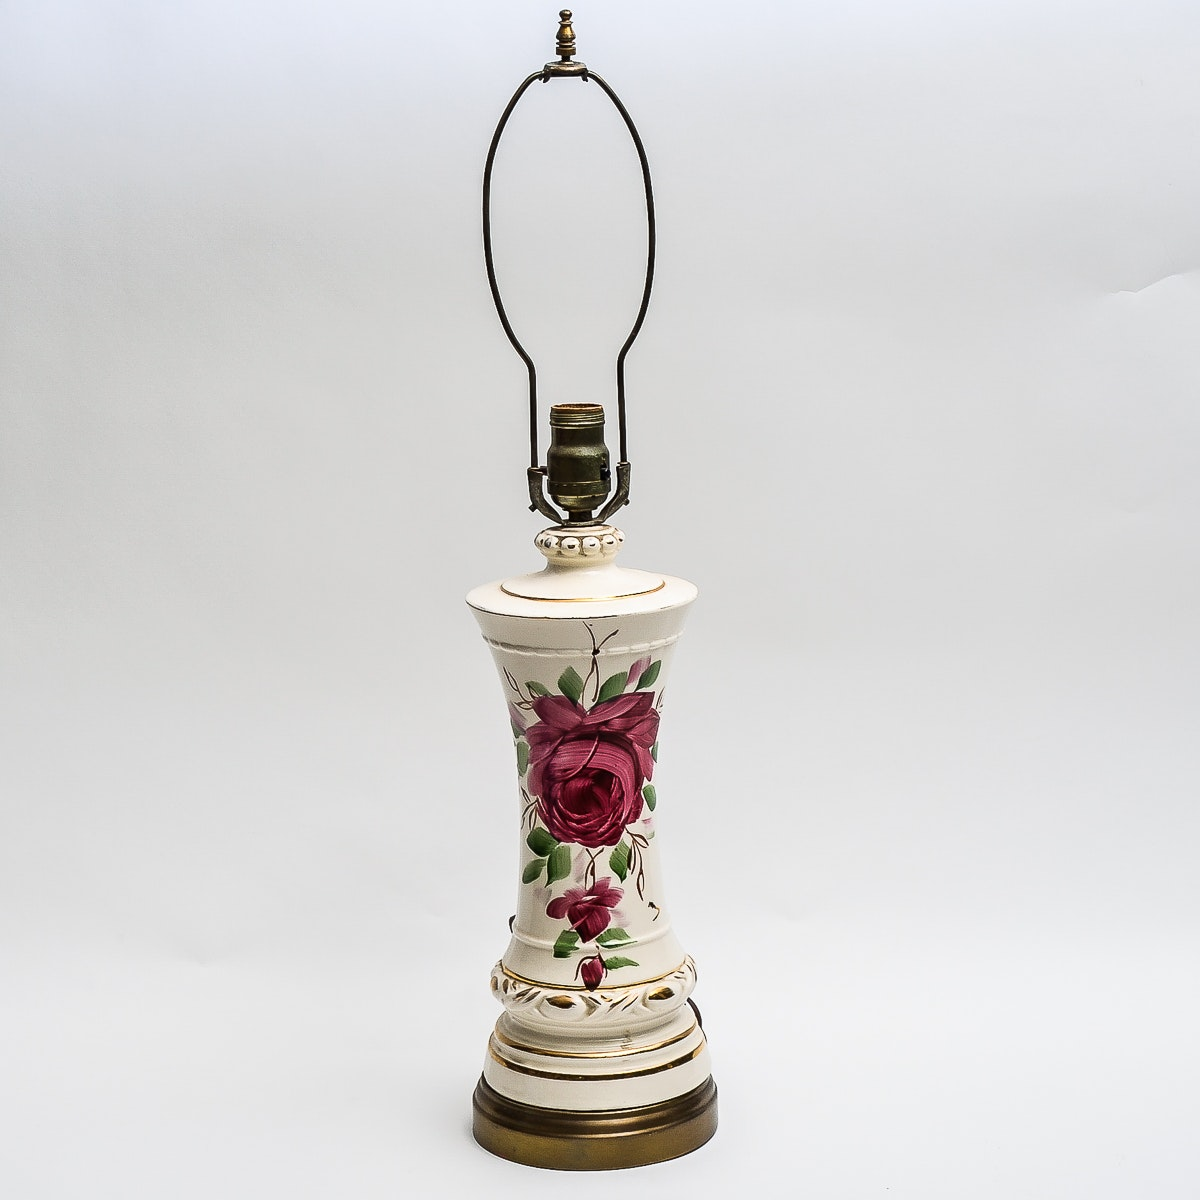 Vintage Hand Painted Porcelain Tale Lamp